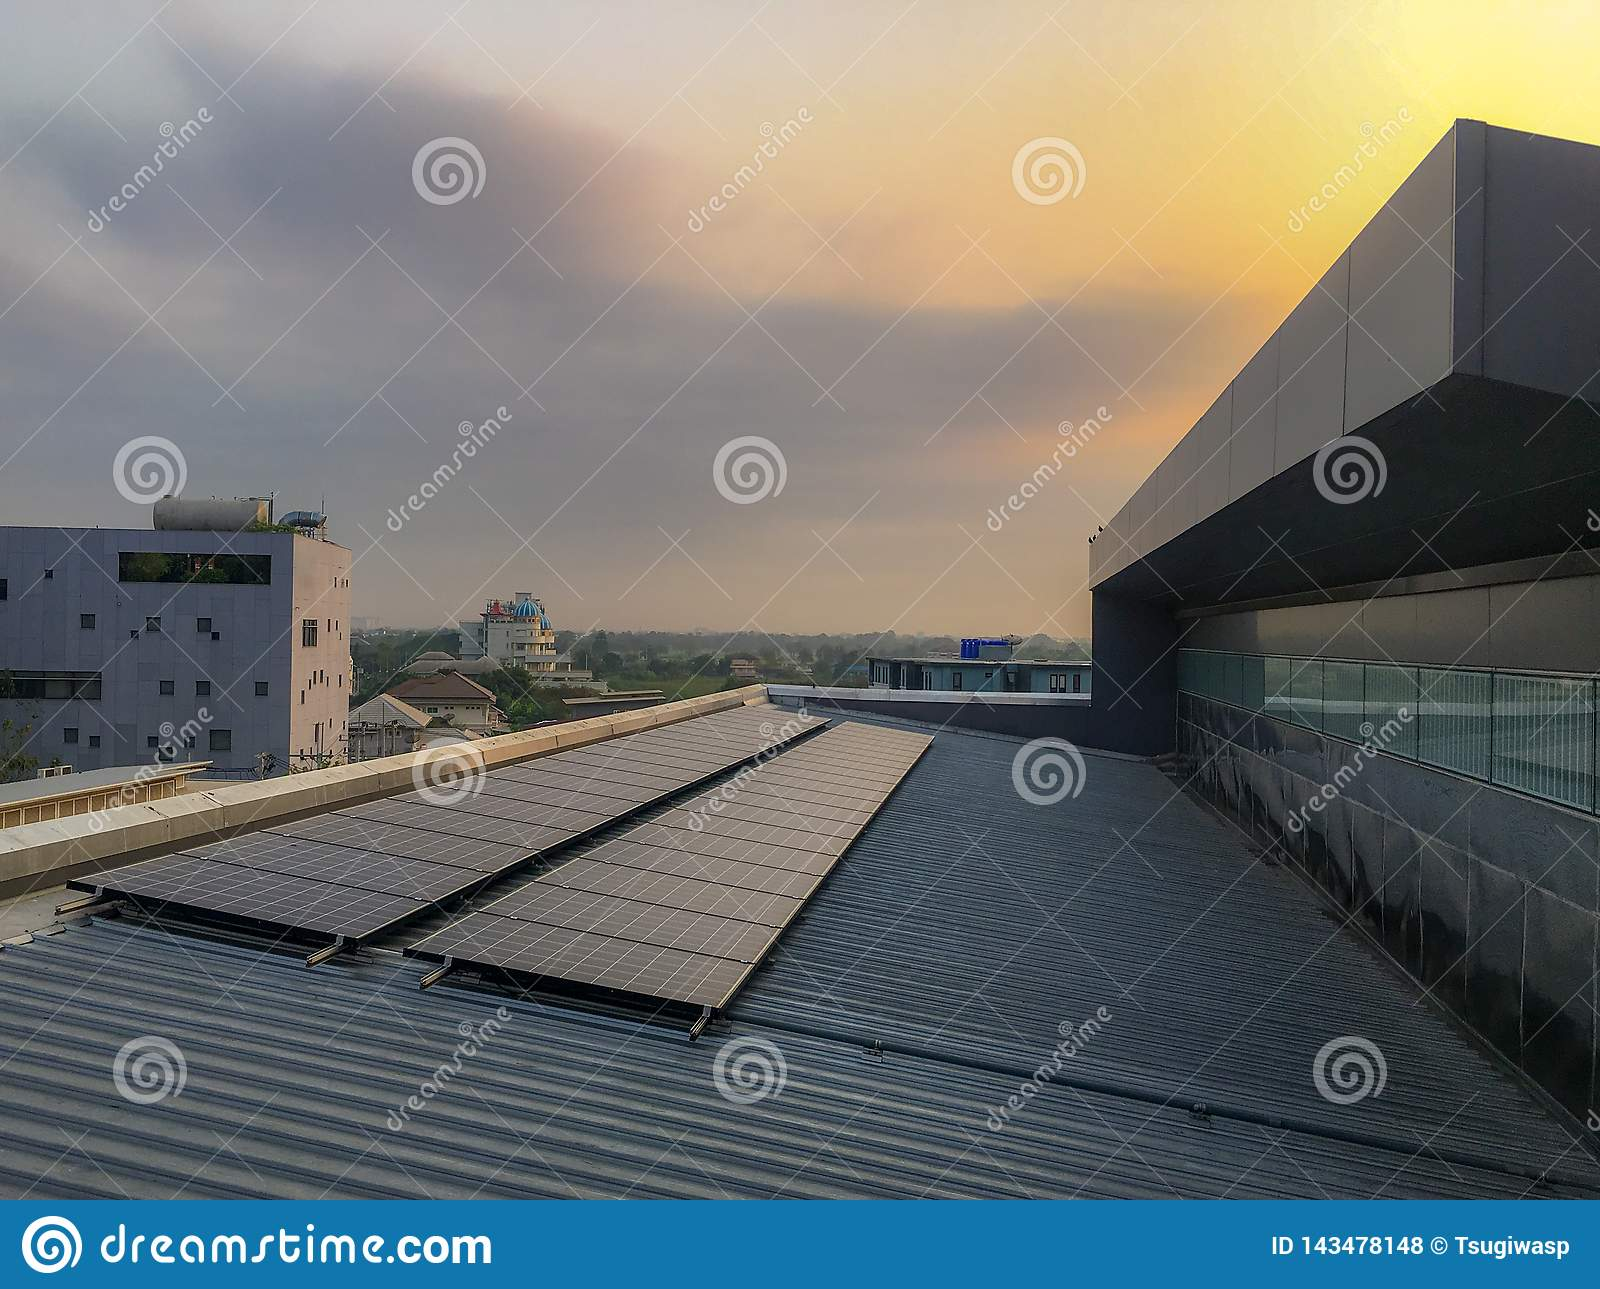 Solar panel install on the roof of the